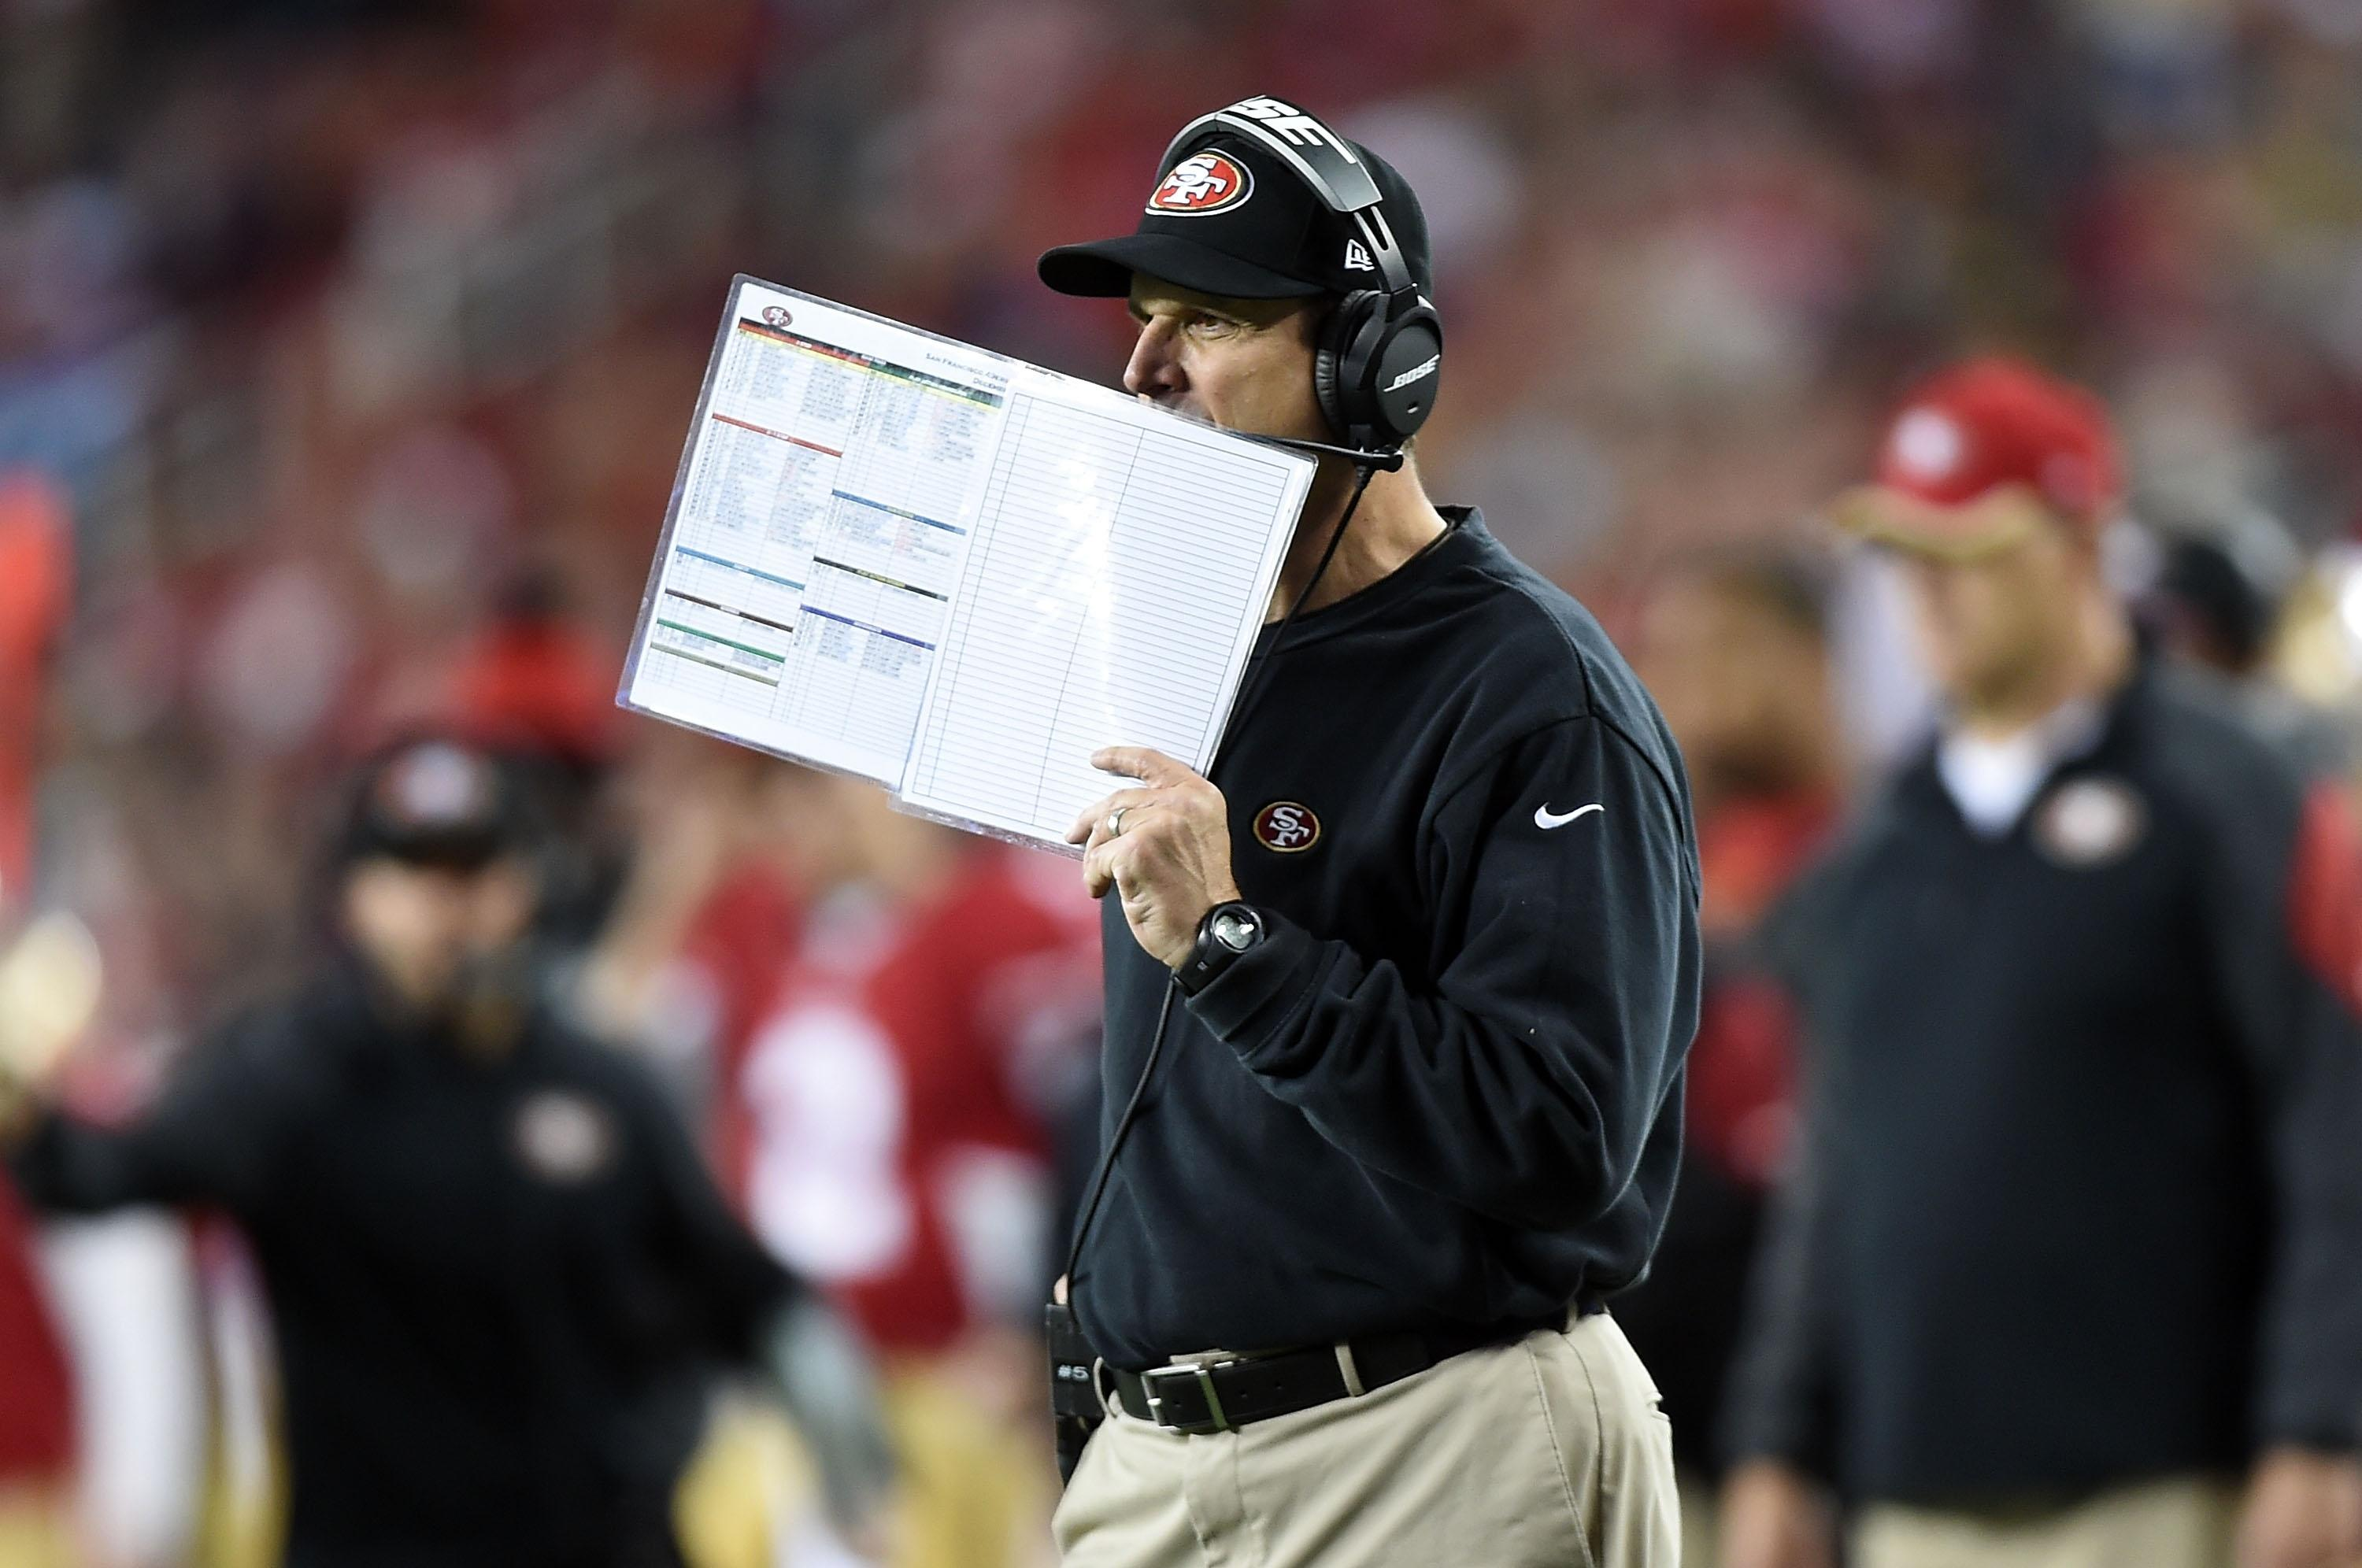 Michigan ticket prices soar in hopes of Jim Harbaugh sighting